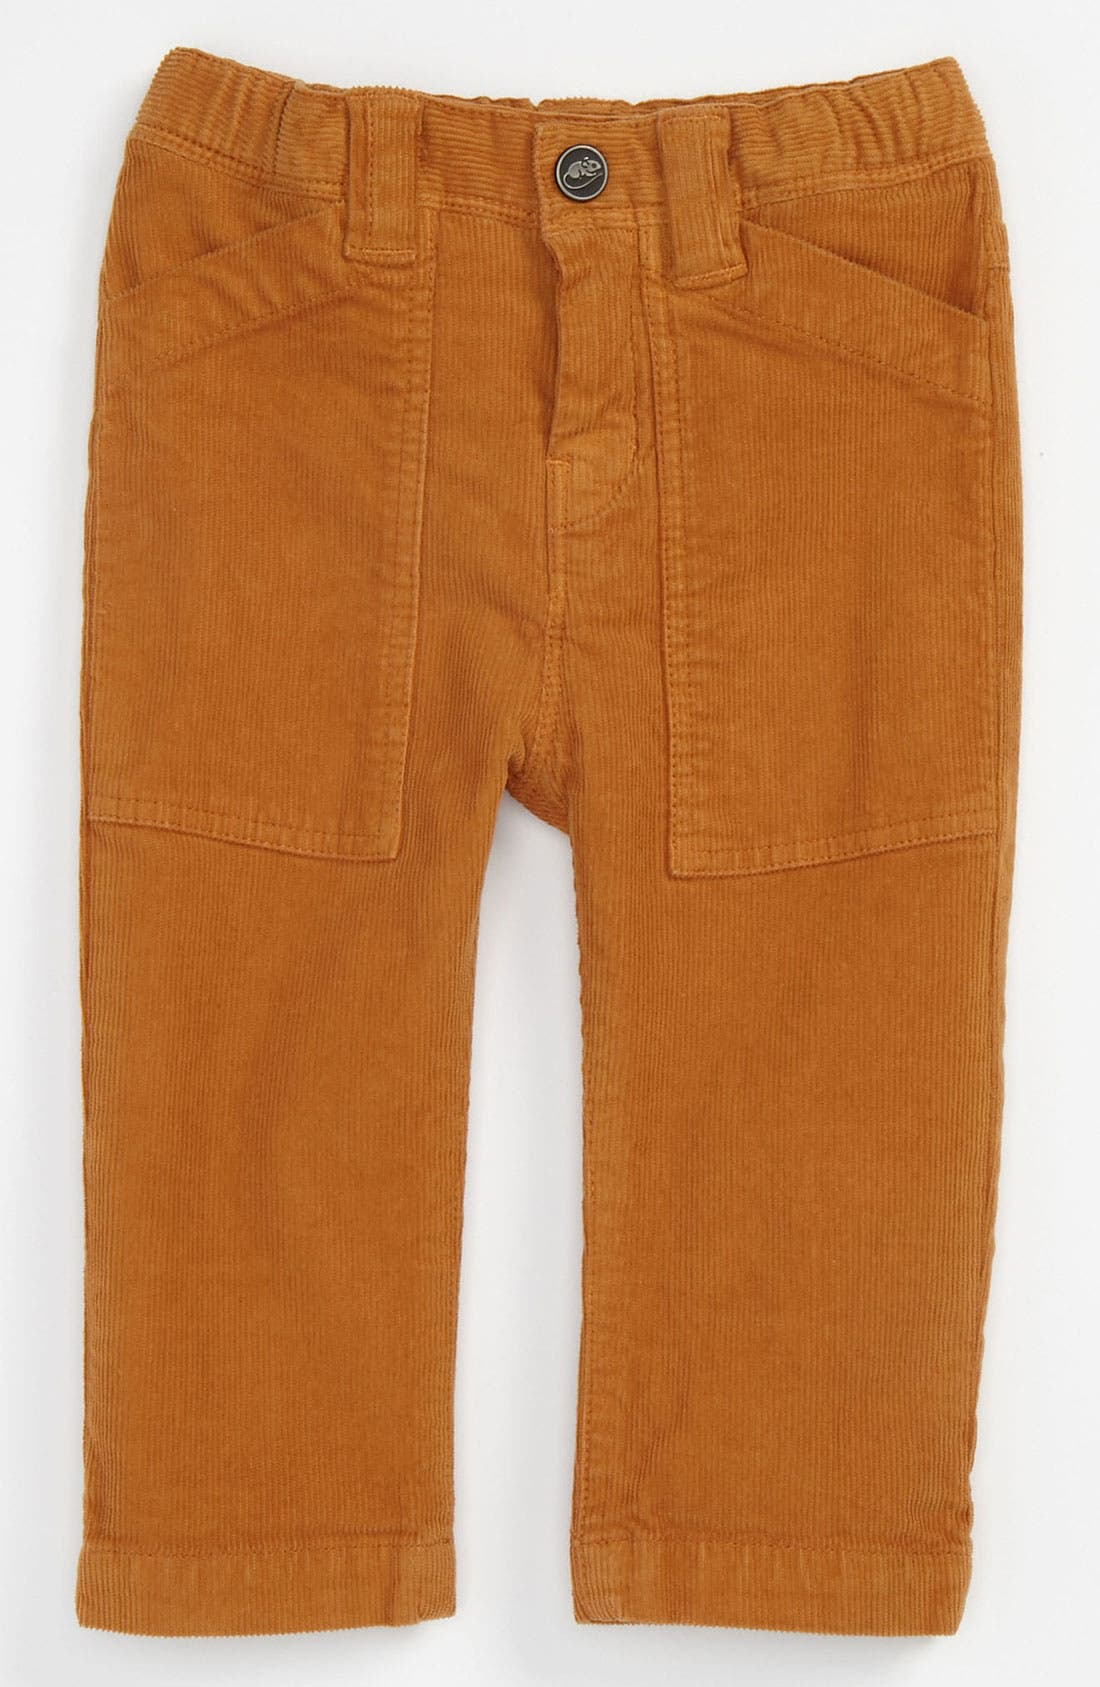 Alternate Image 1 Selected - LITTLE MARC JACOBS Stretch Corduroy Pants (Infant)